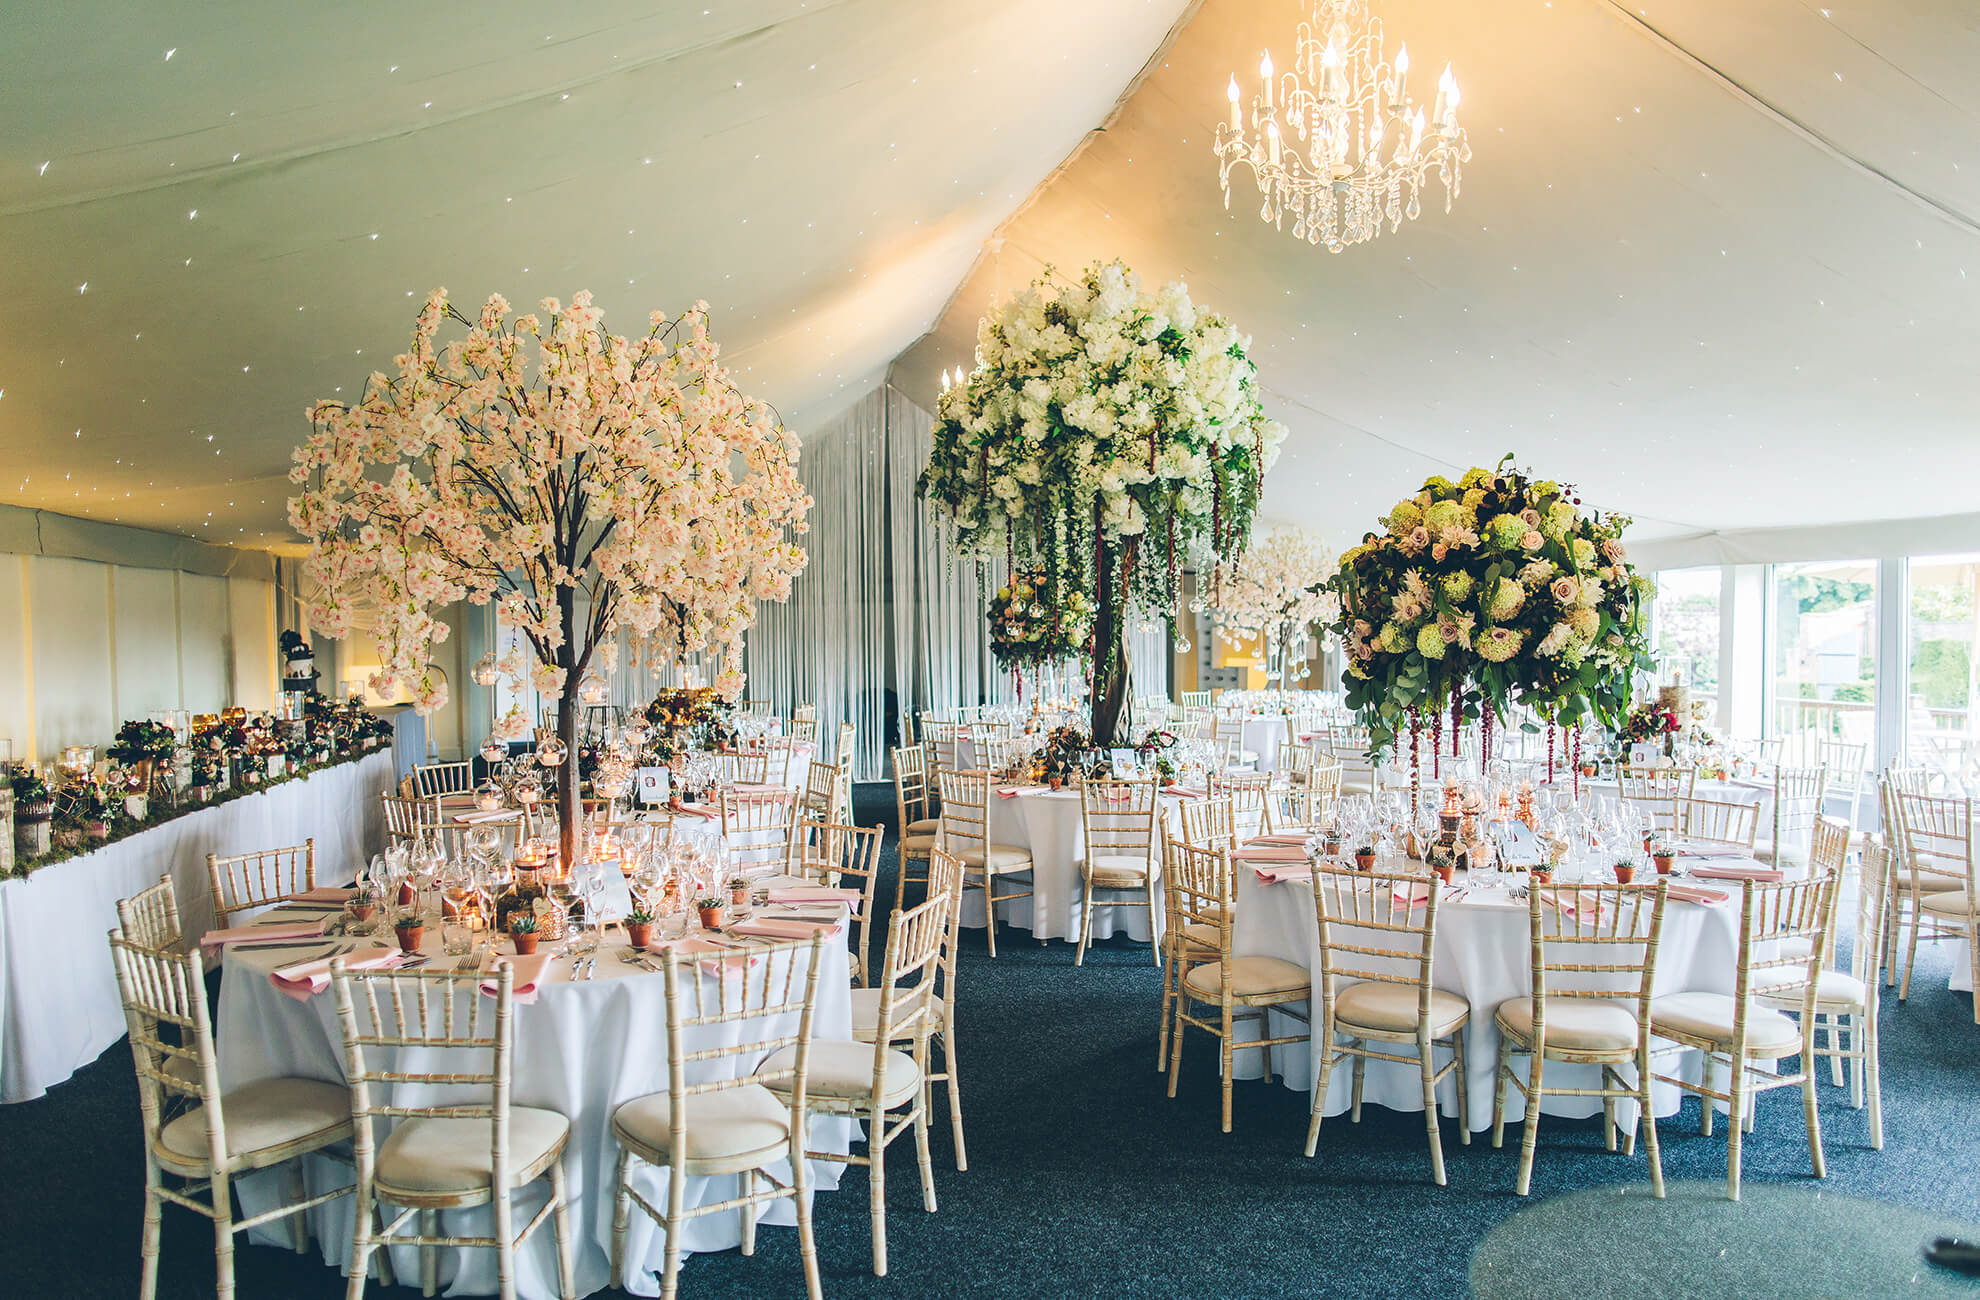 The Pavilion is the perfect blank canvas for your wedding reception at Combermere Abbey in Cheshire – wedding ideas